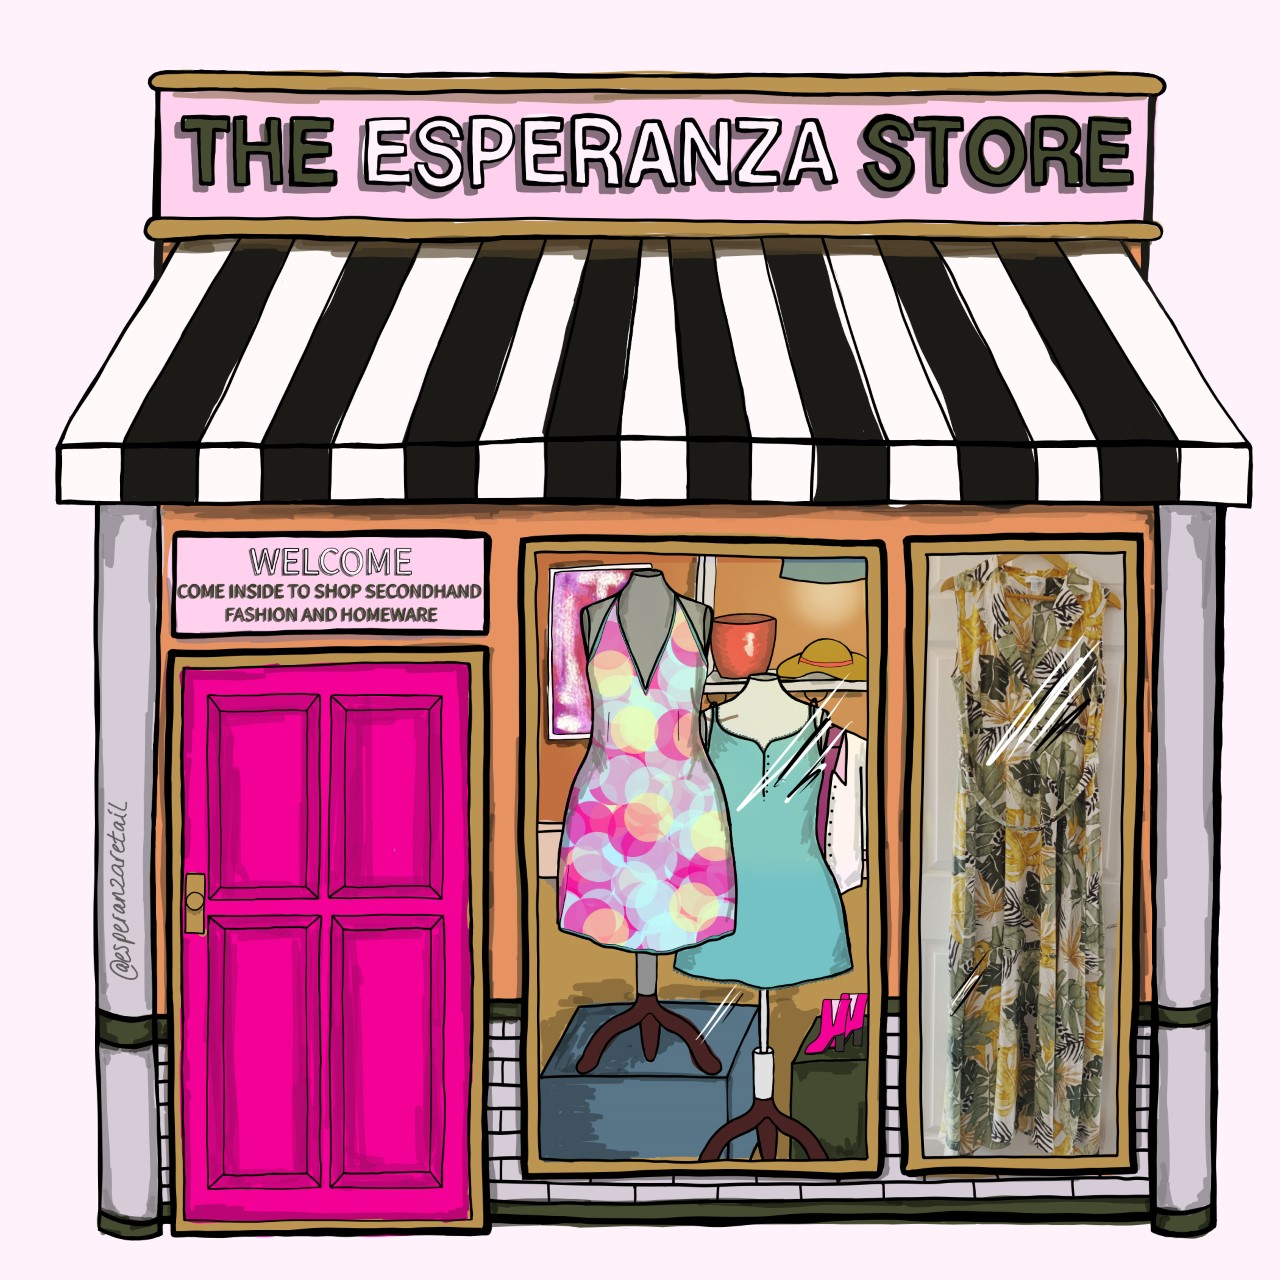 Illustration of The Esperanza Store with a black and white striped awning and mannequins in the window.